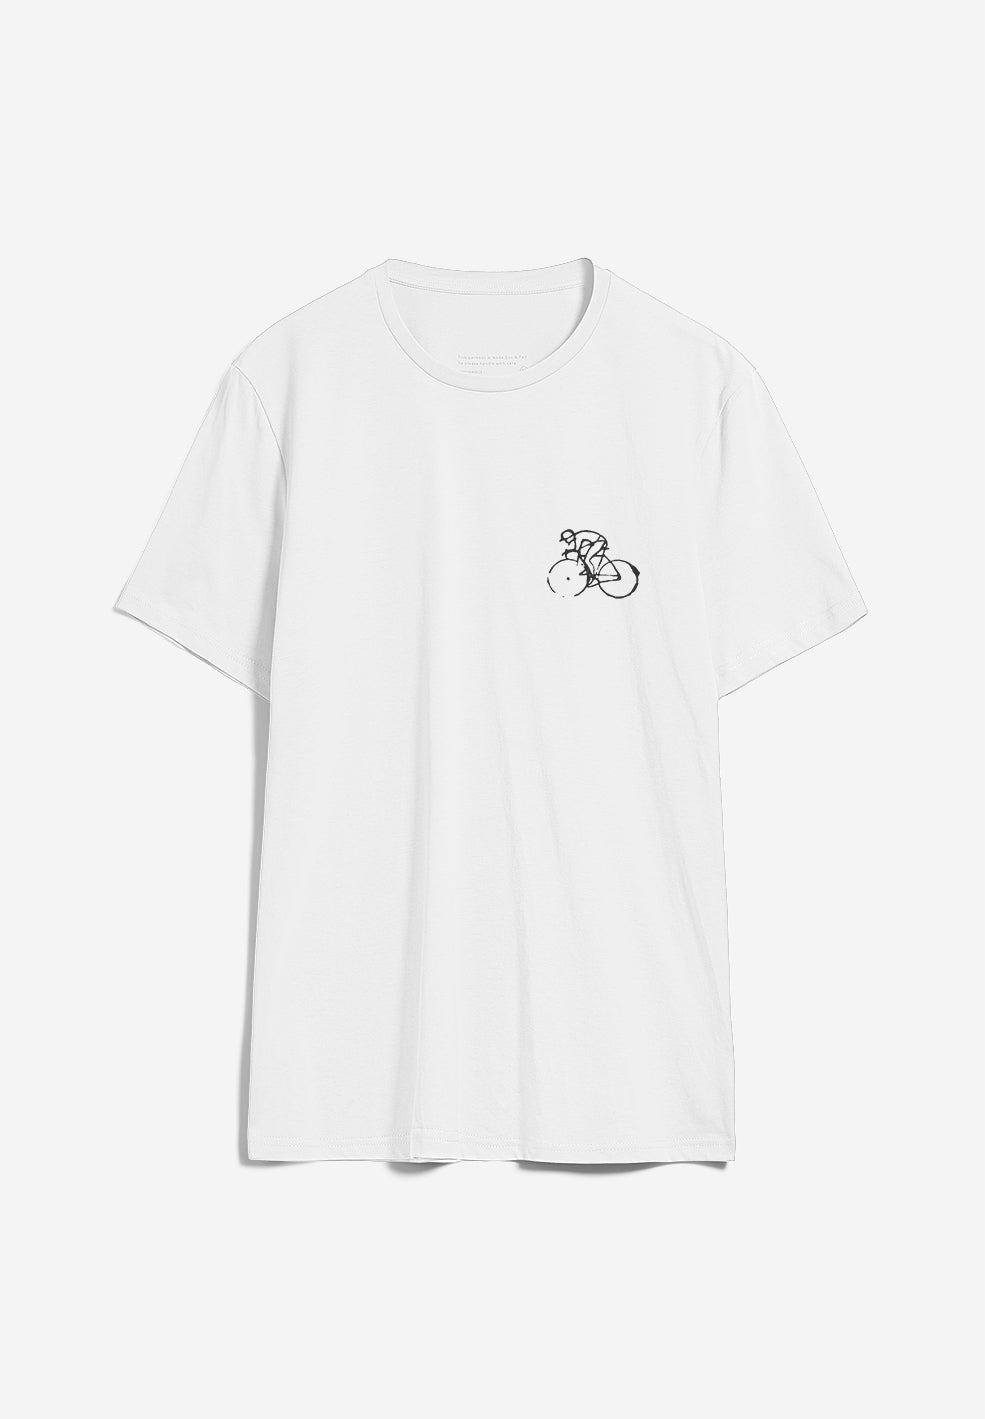 t-shirt jaames bike season white